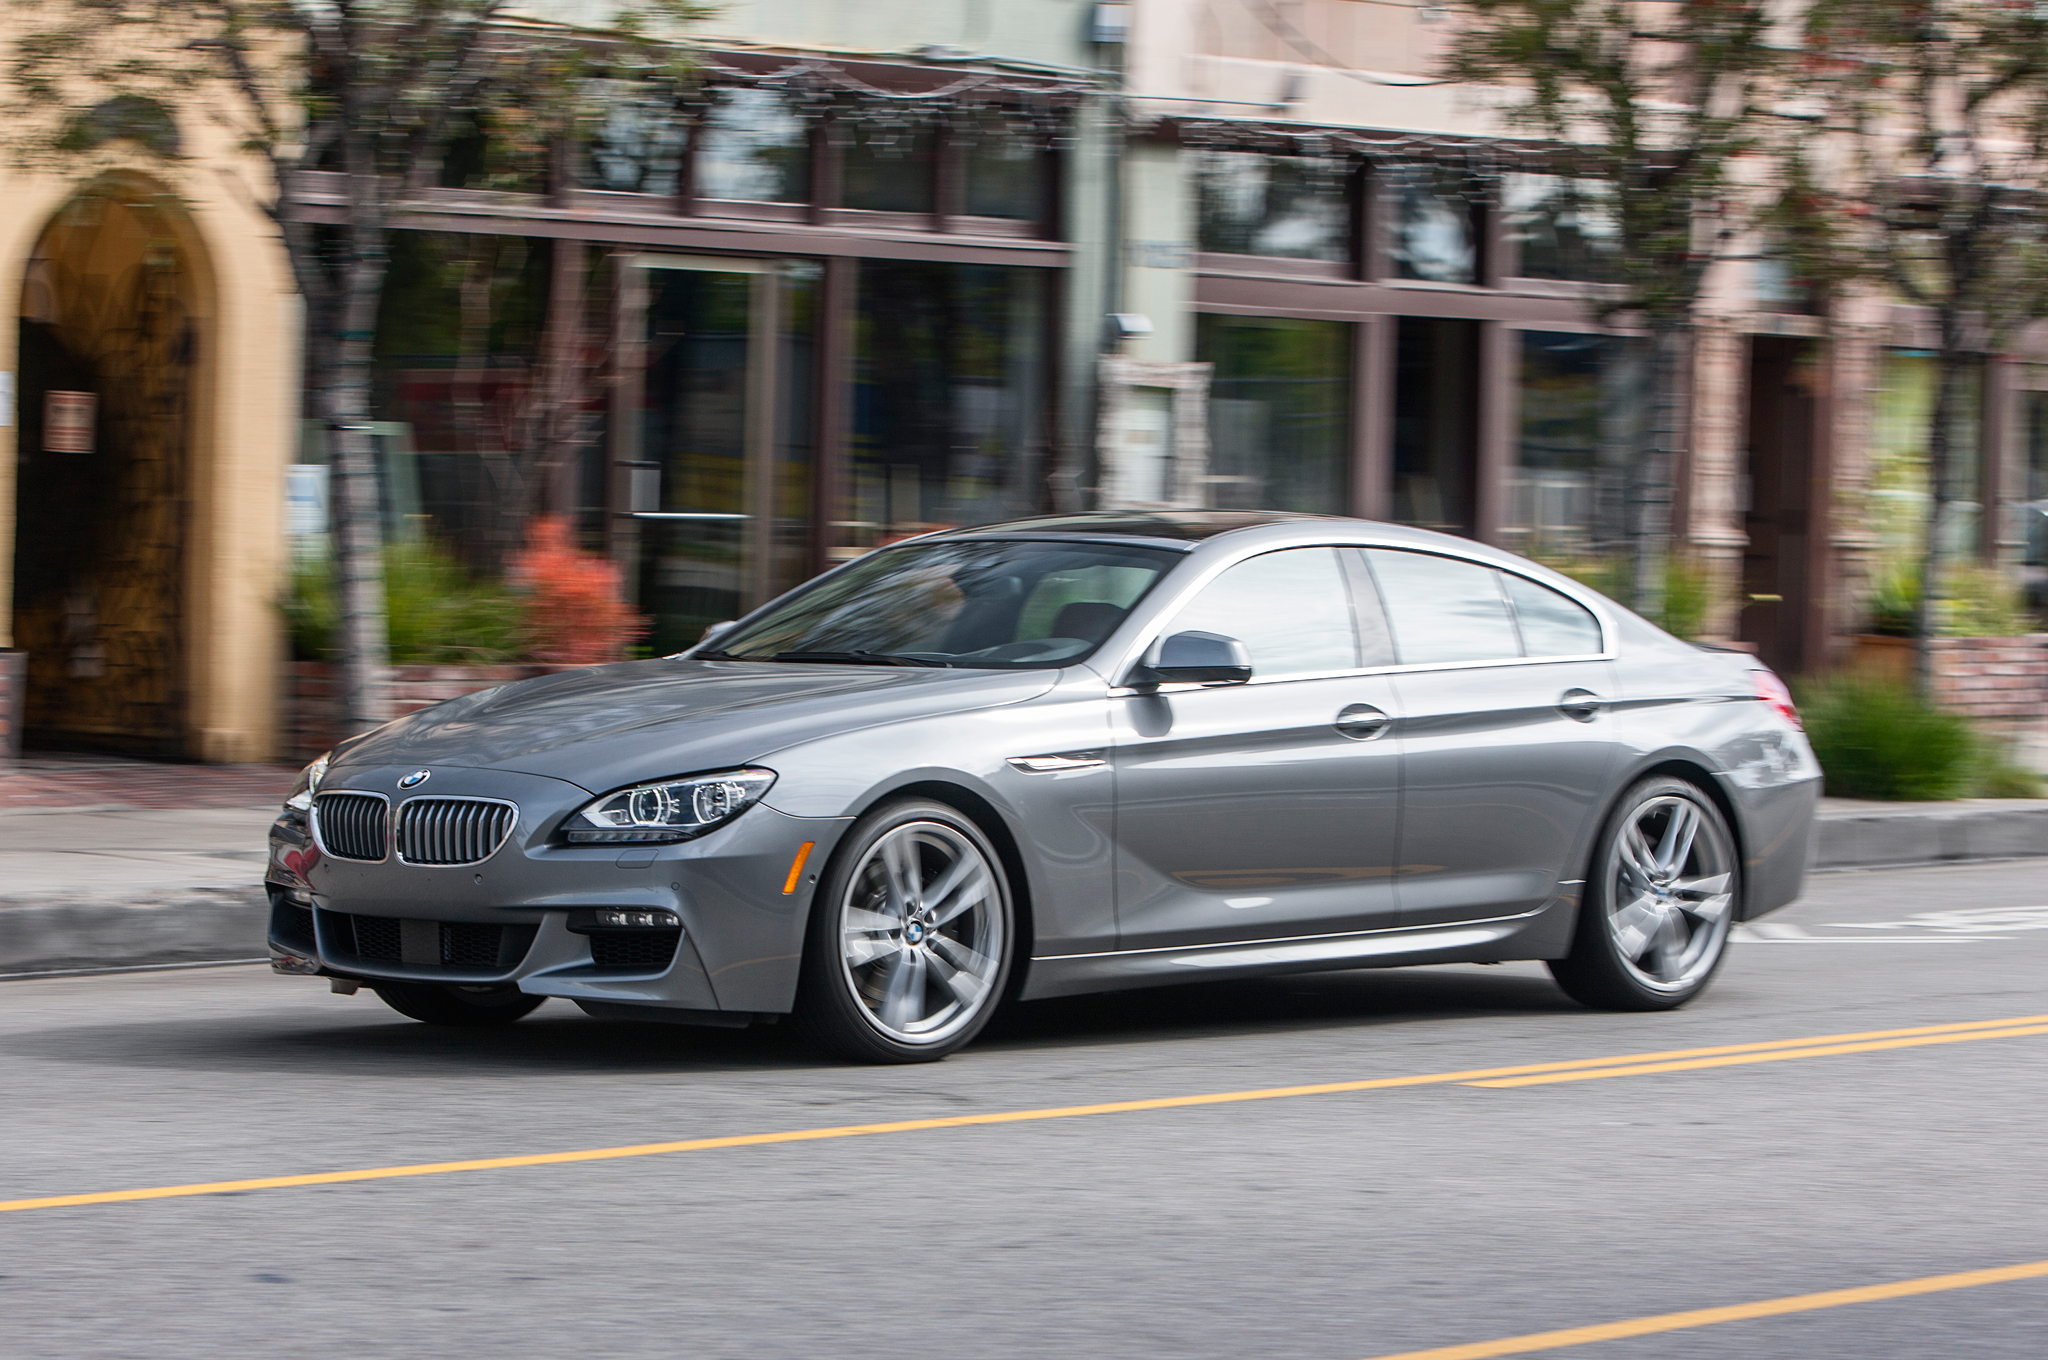 Bmw 650I 0 60 >> 2013 Bmw 650i Gran Coupe Arrival Motor Trend Motortrend